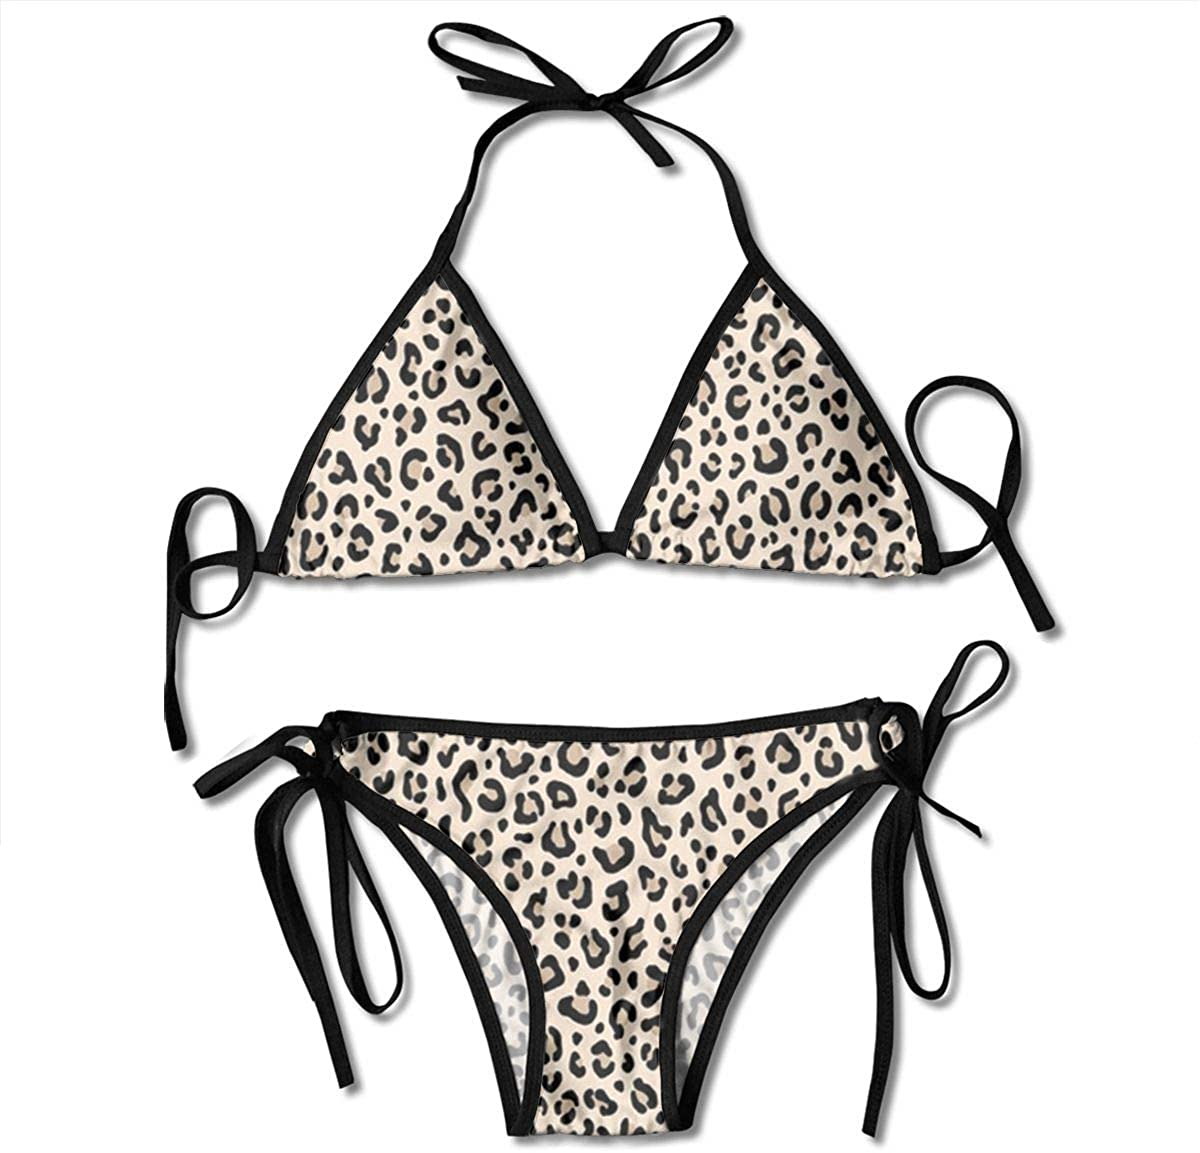 Black and White Animal Leopard Spots Print Padded Push Up Bikini Set Two Piece Swimsuit Beach Bathing Suits for Women Girls Sexy